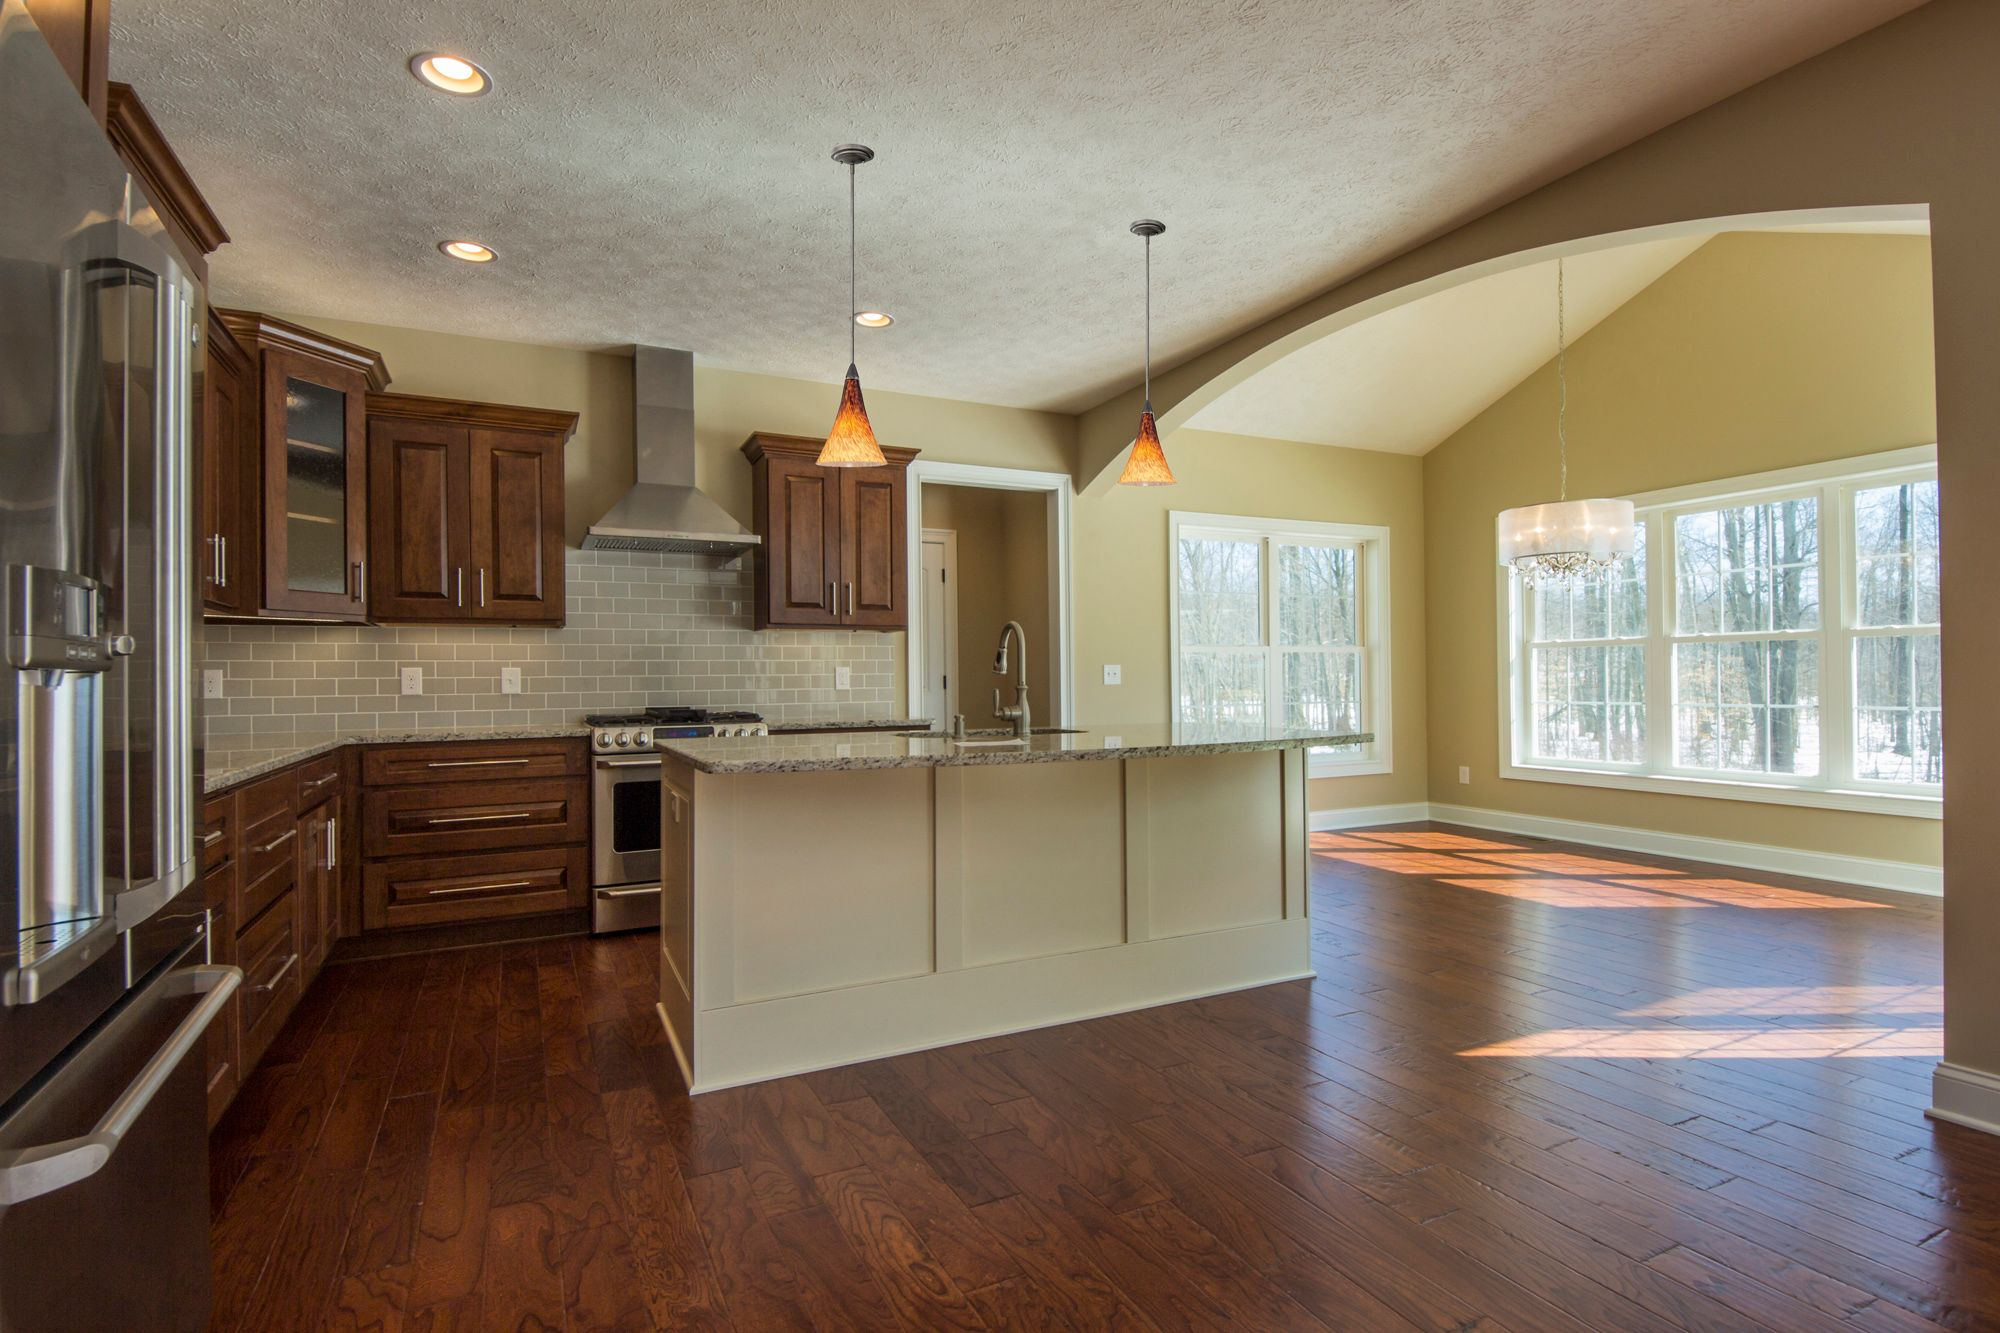 Kitchen featured in the Caldwell C2 By Classic Homes in Akron, OH